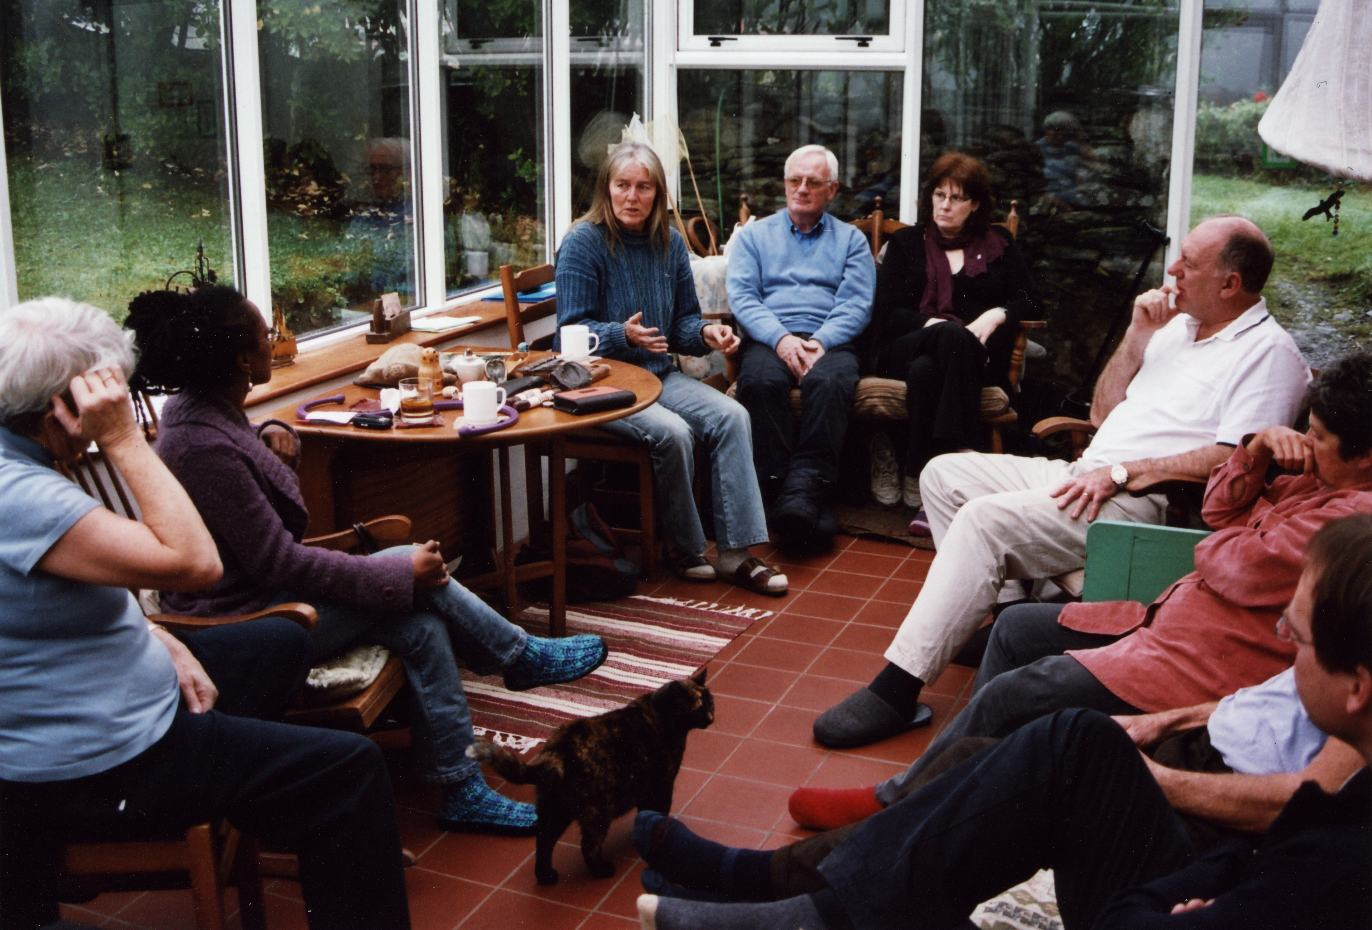 The group at work in the conservatory